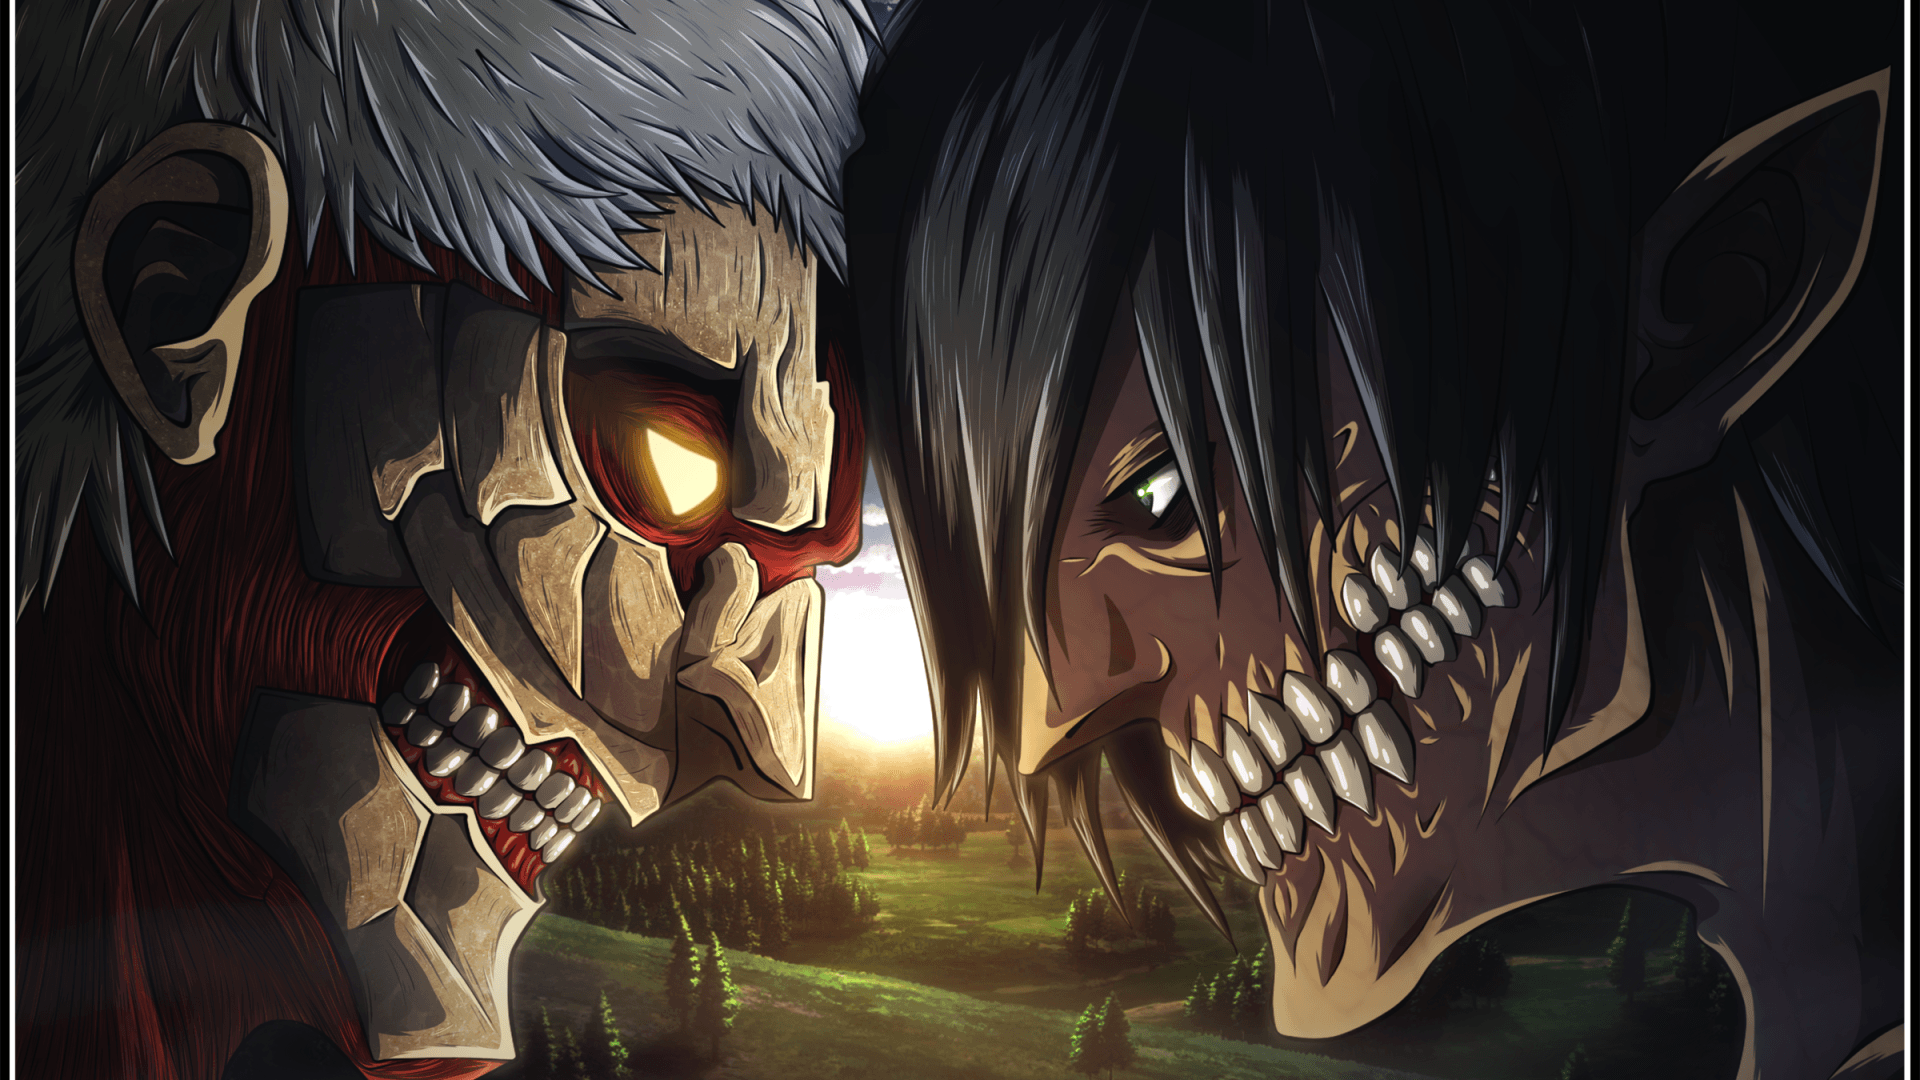 Anime Hd Attack On Titan Wallpapers Wallpaper Cave